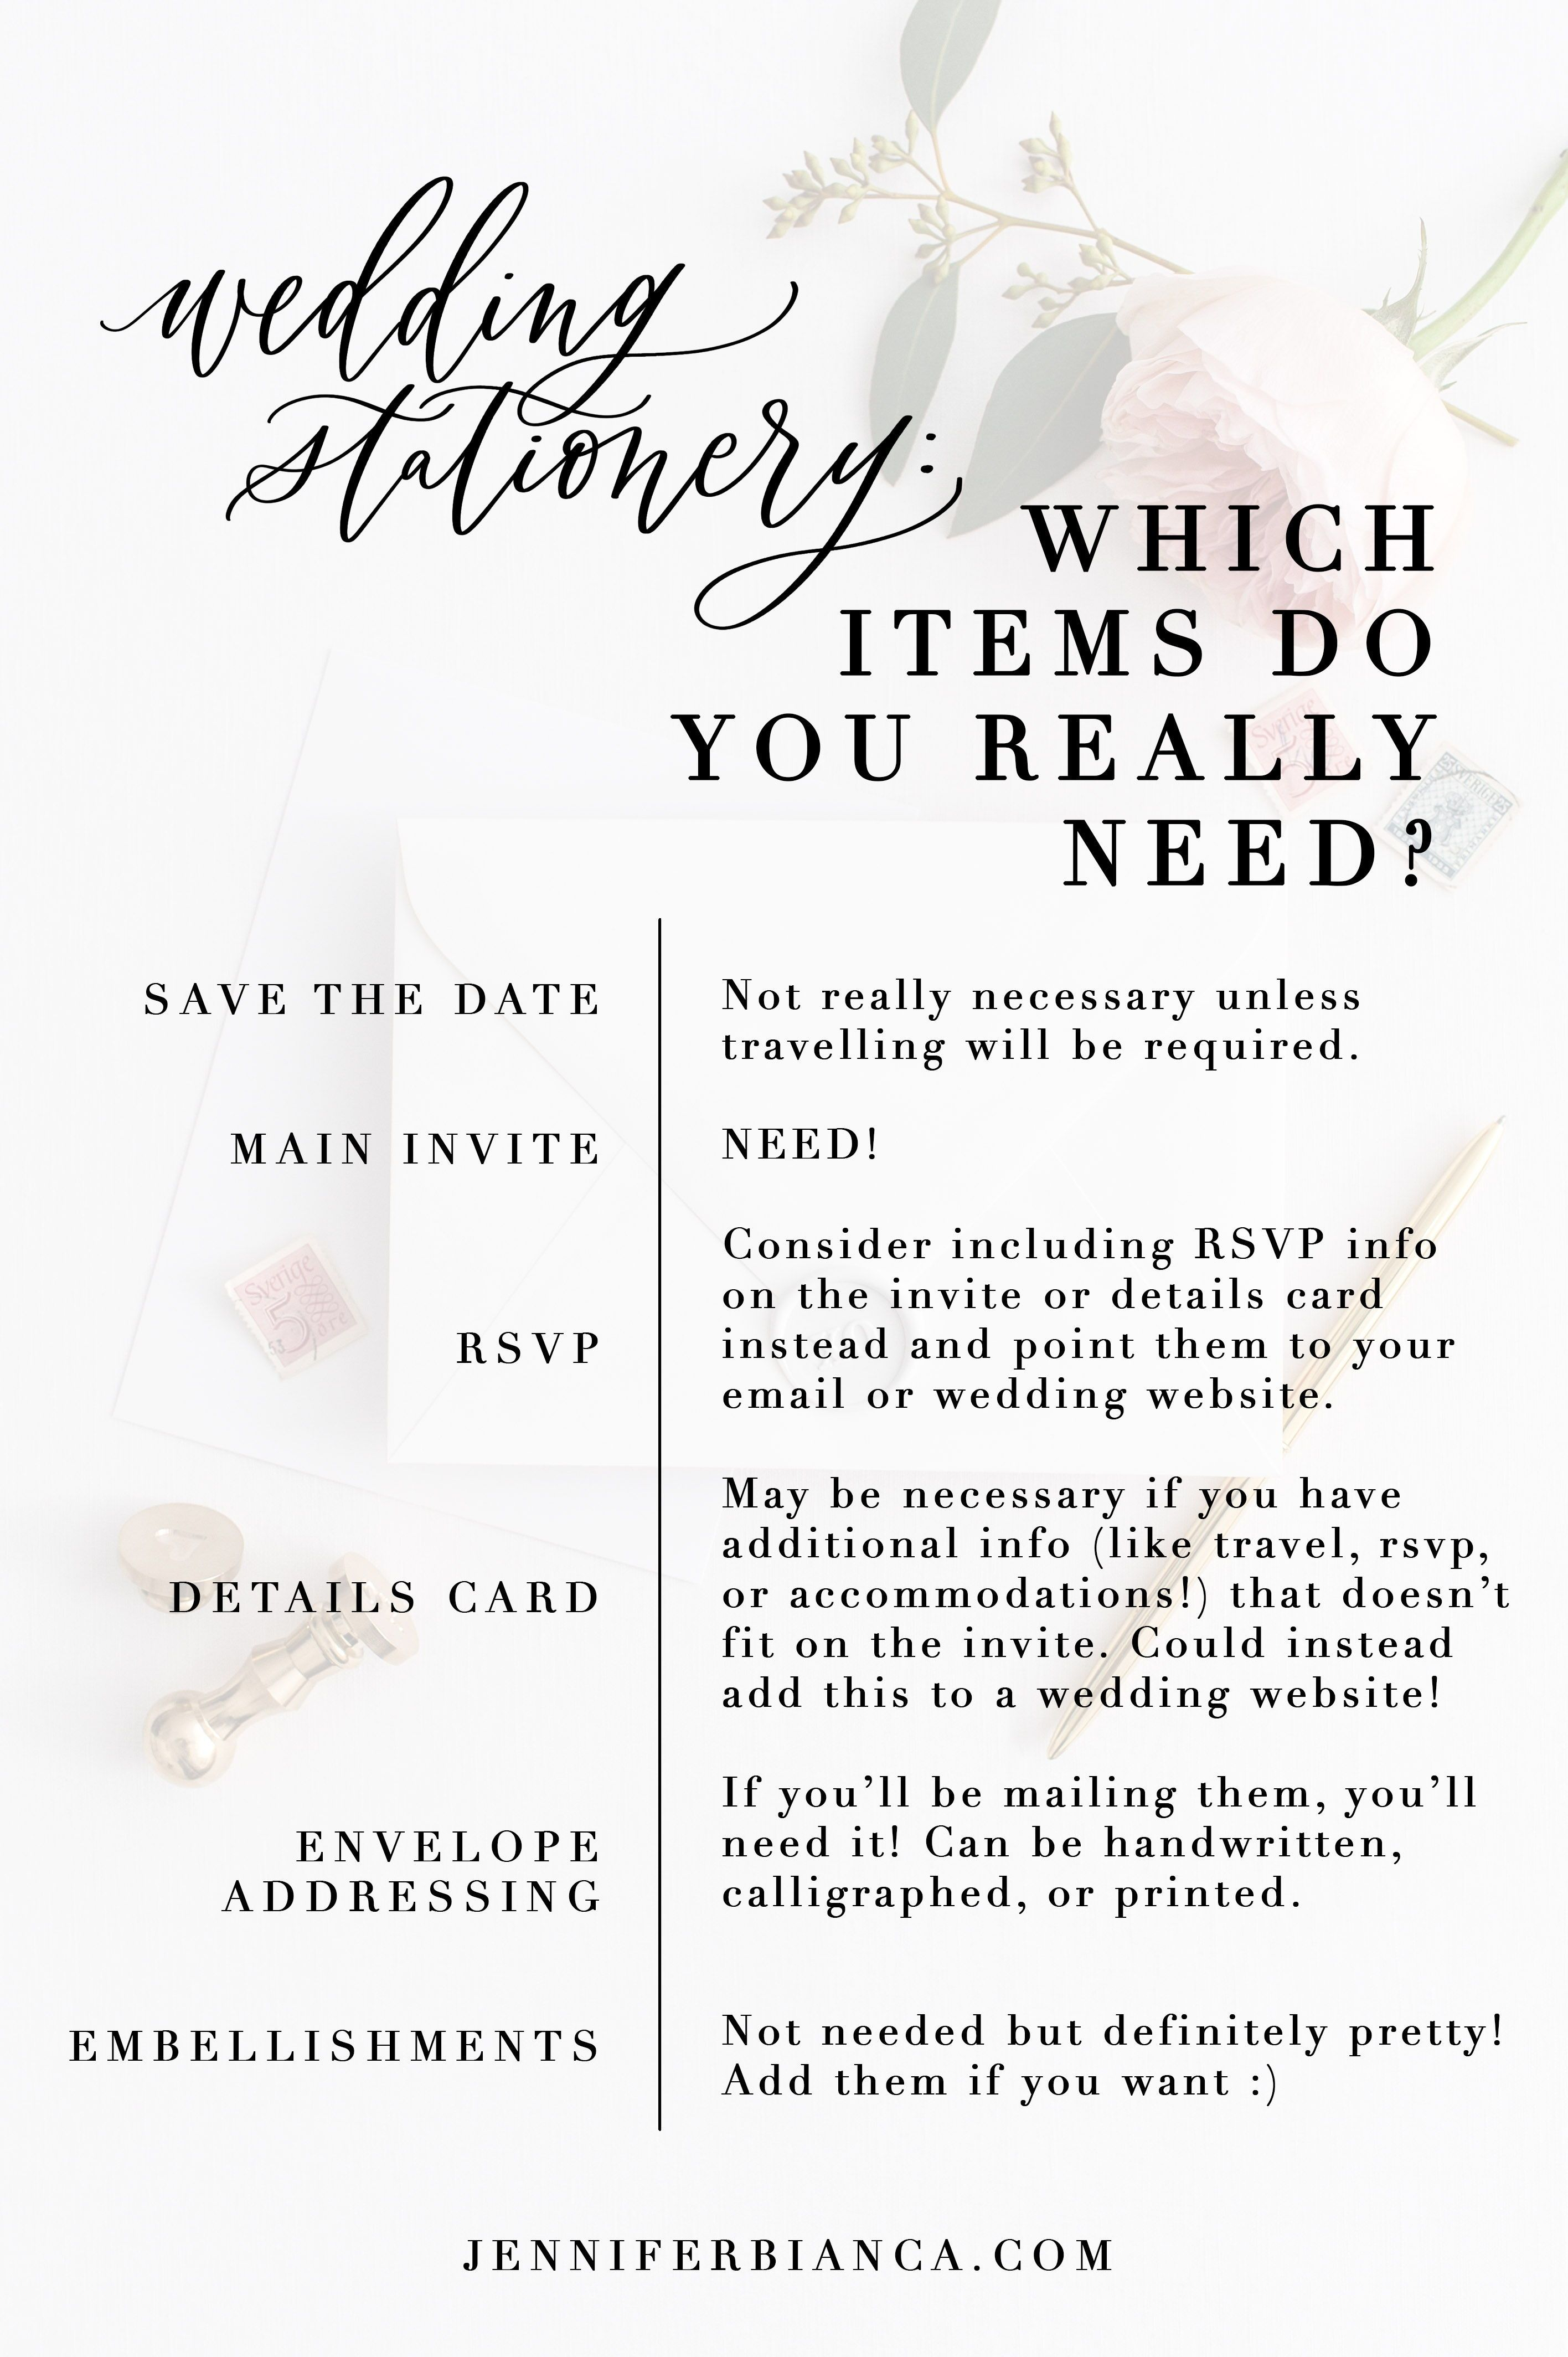 Wedding Stationery What Items Do You Really Need Wedding Stationery Wedding Website Do You Really